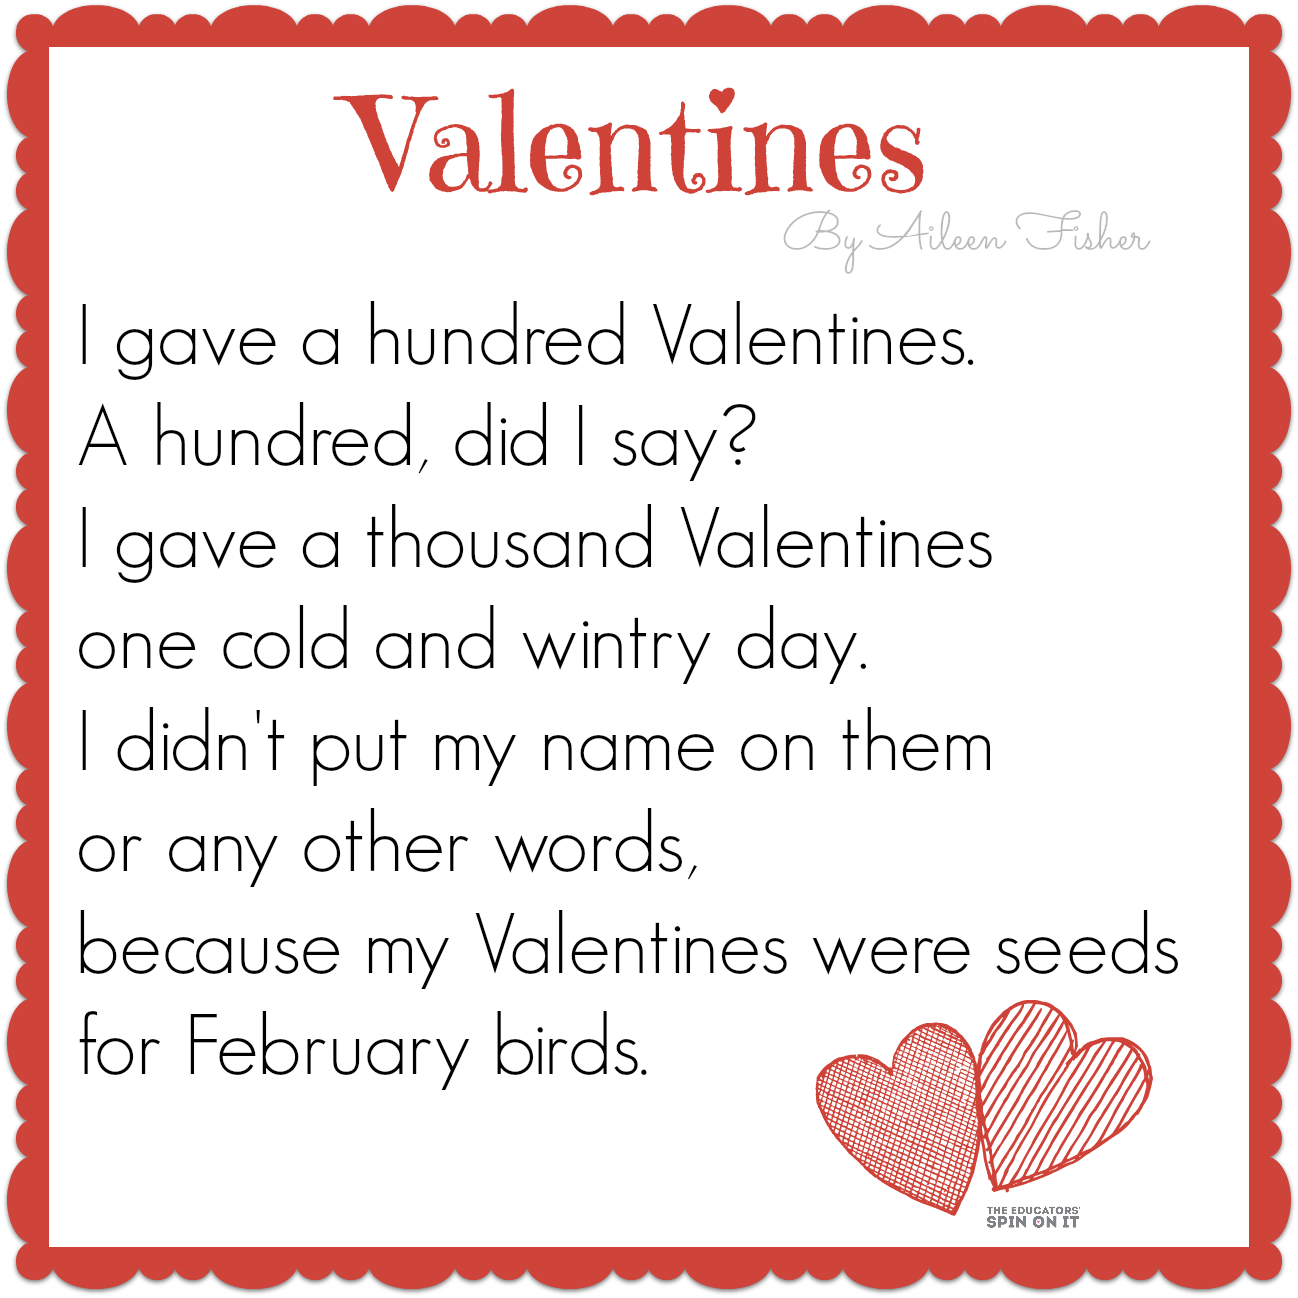 Uncategorized Valentines Poem For Kids 100th day of school activities bird seed crafts poem and spin valentine craftsvalentines poemssmall